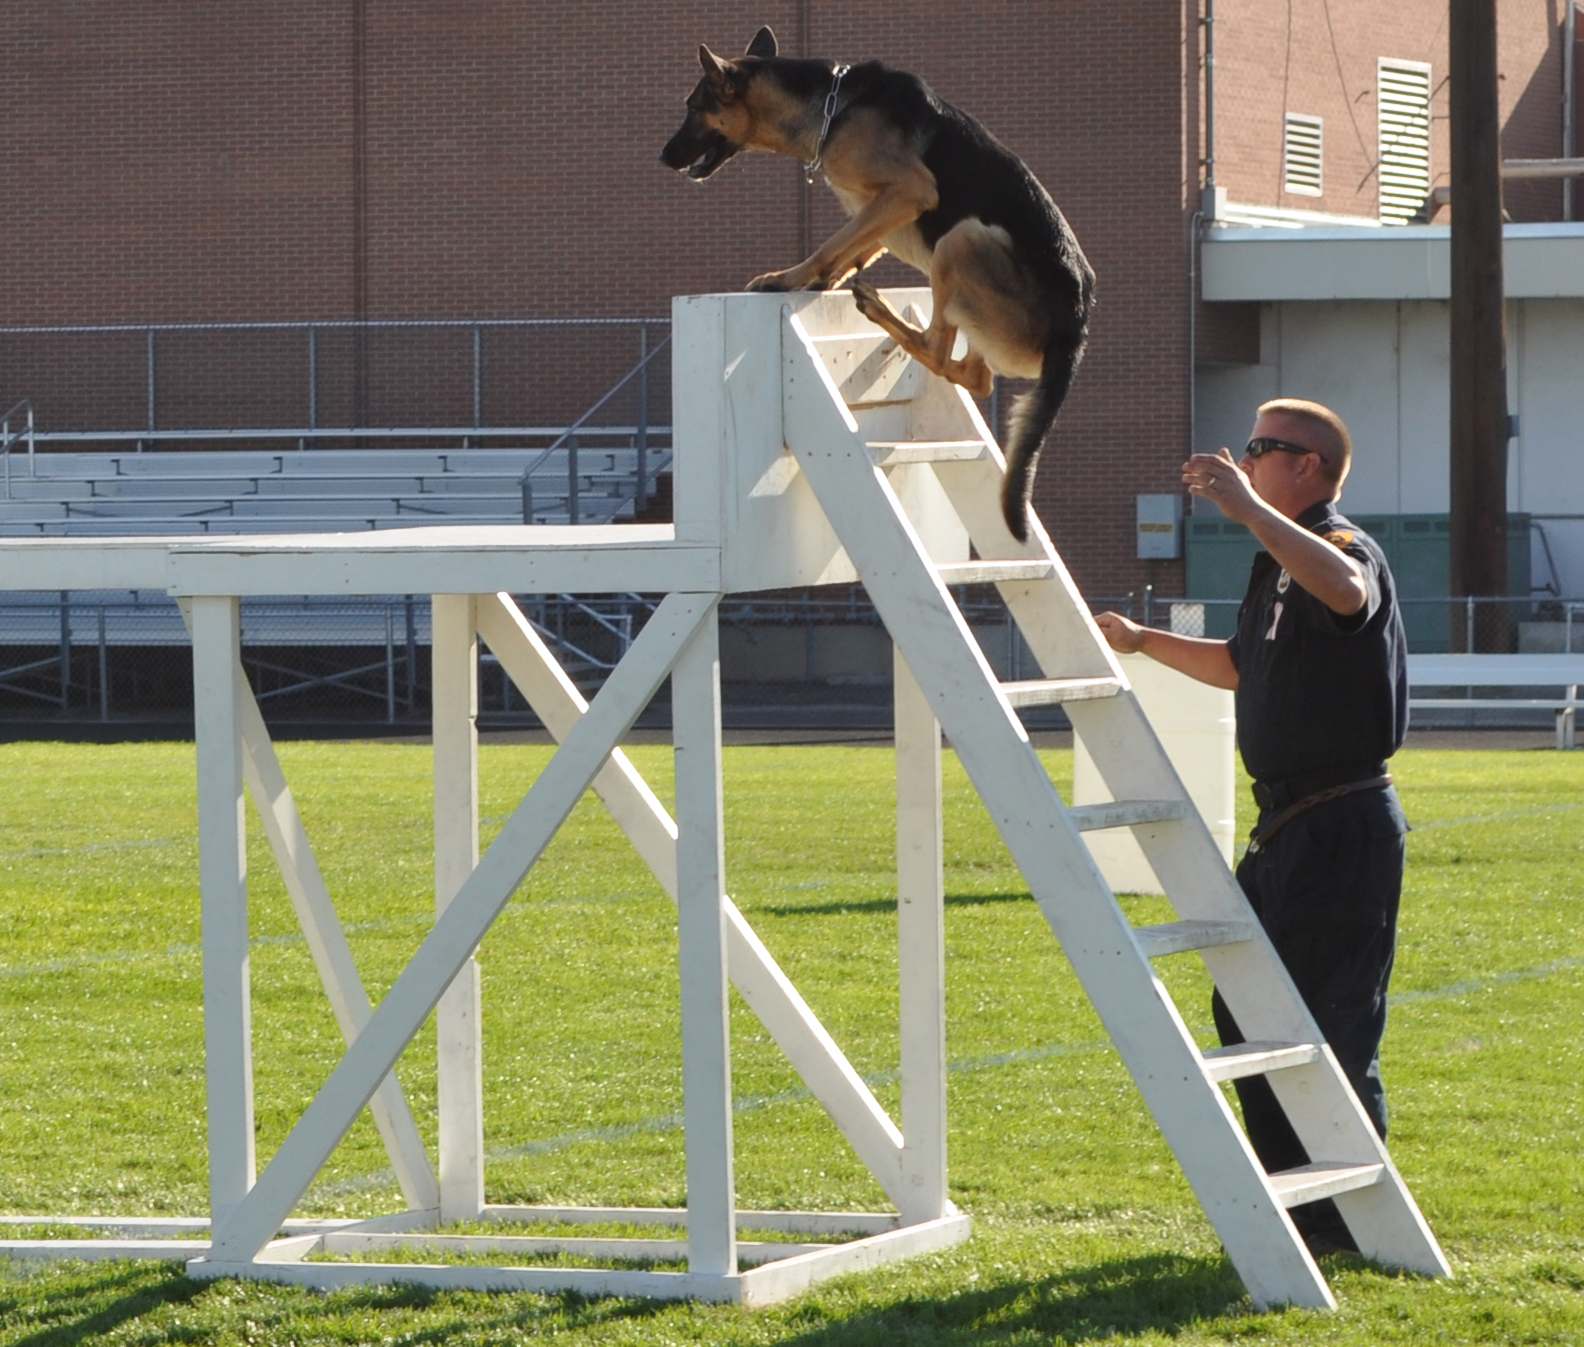 A trophy and bragging rights are up for grabs at the K9 trials at Provo High School.